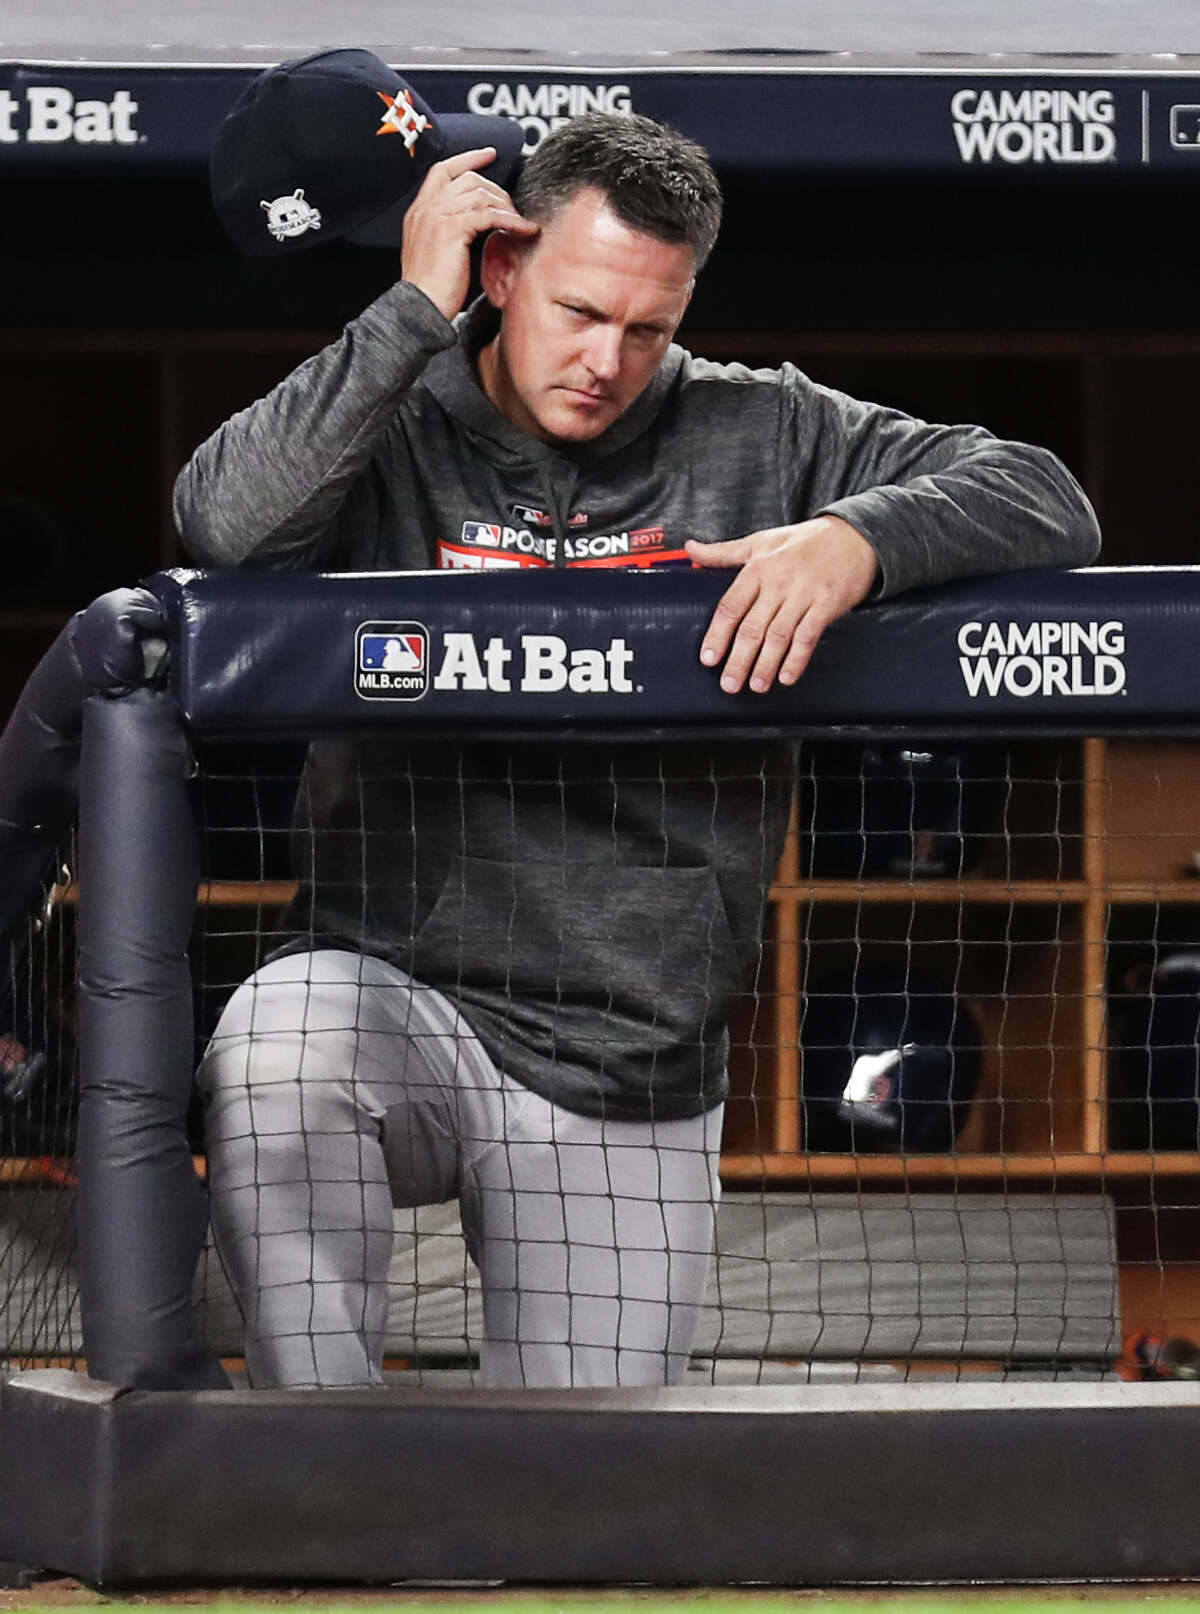 Houston Astros manager A.J. Hinch stands in the dugout during the sixth inning of Game 5 of the ALCS at Yankee Stadium on Wednesday, Oct. 18, 2017, in New York. ( Michael Ciaglo / Houston Chronicle )